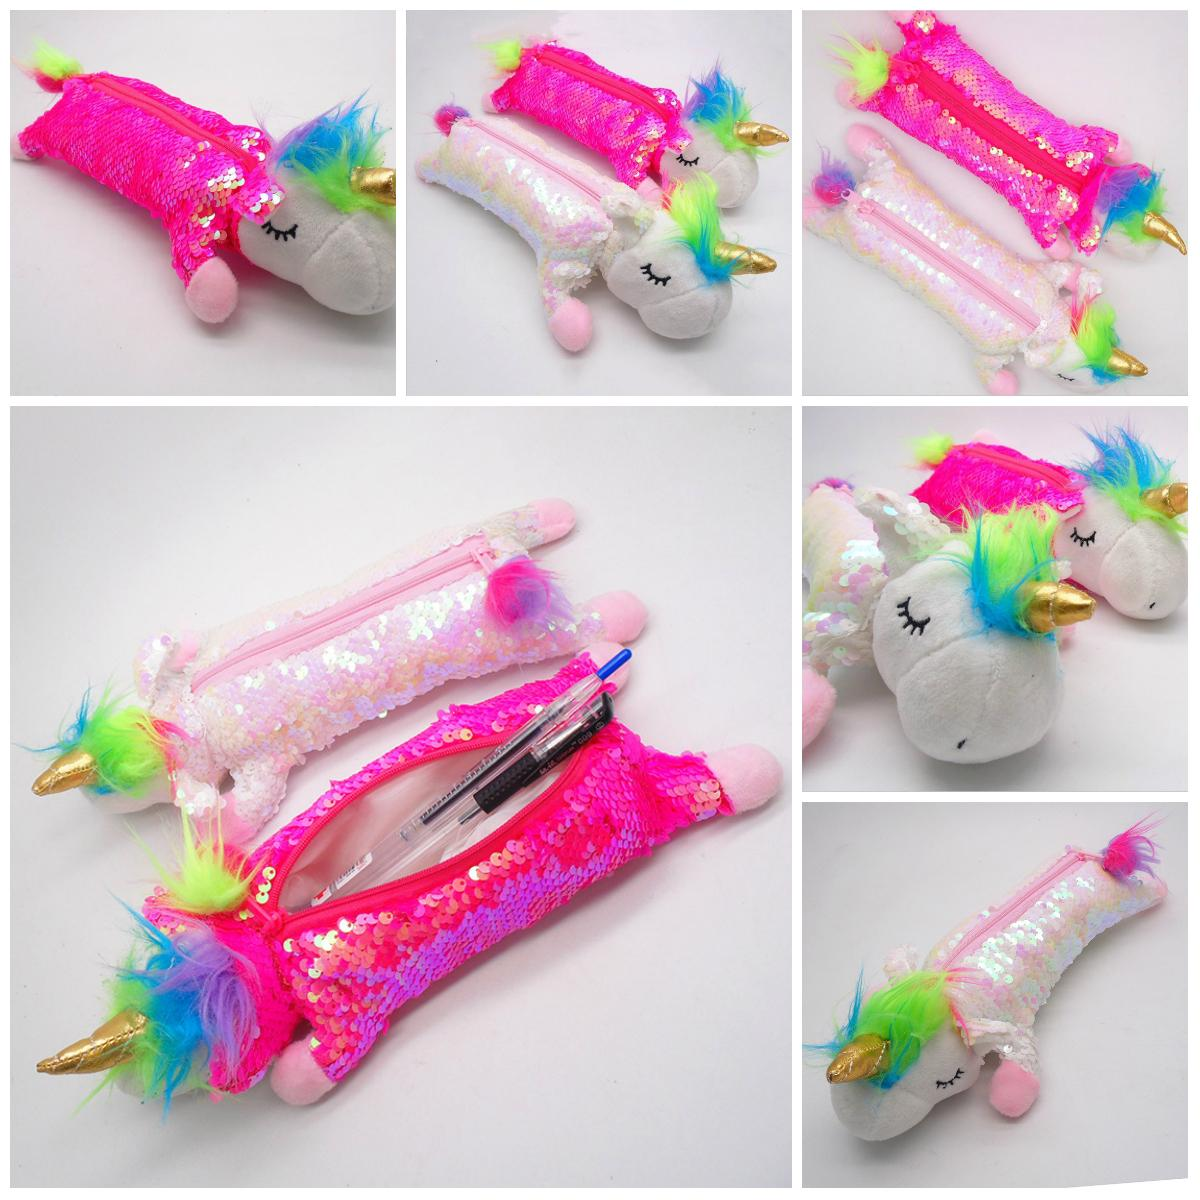 New Cartoon sequined unicorn stationery bag two-sided plush cosmetics container travel portable pencil box pen box 2 styles T3I5327